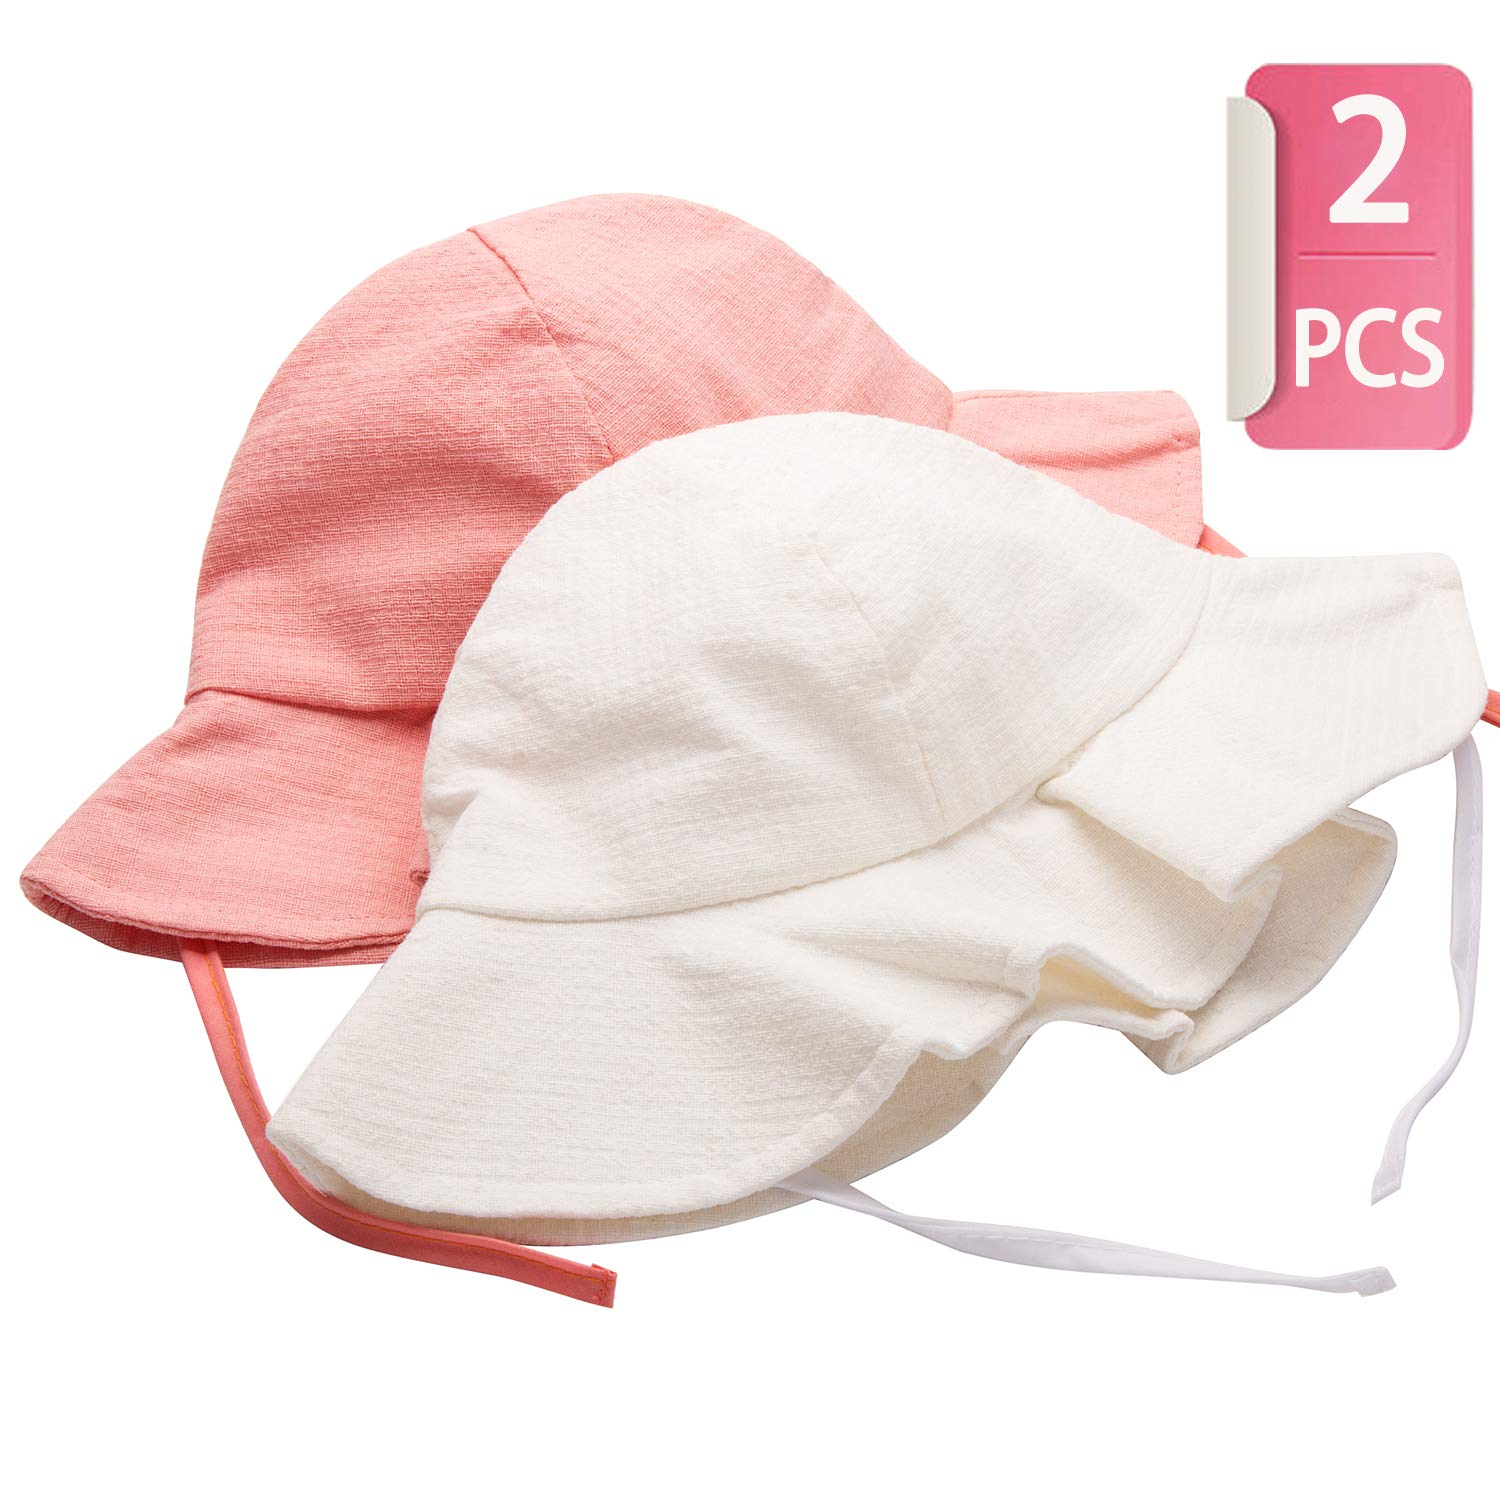 Kids Sun Hat for Baby Toddler UPF 50+ UV Ray Sun Protection Wide Brim Sun Protective Hat (1pcs Pink+1pcs White)